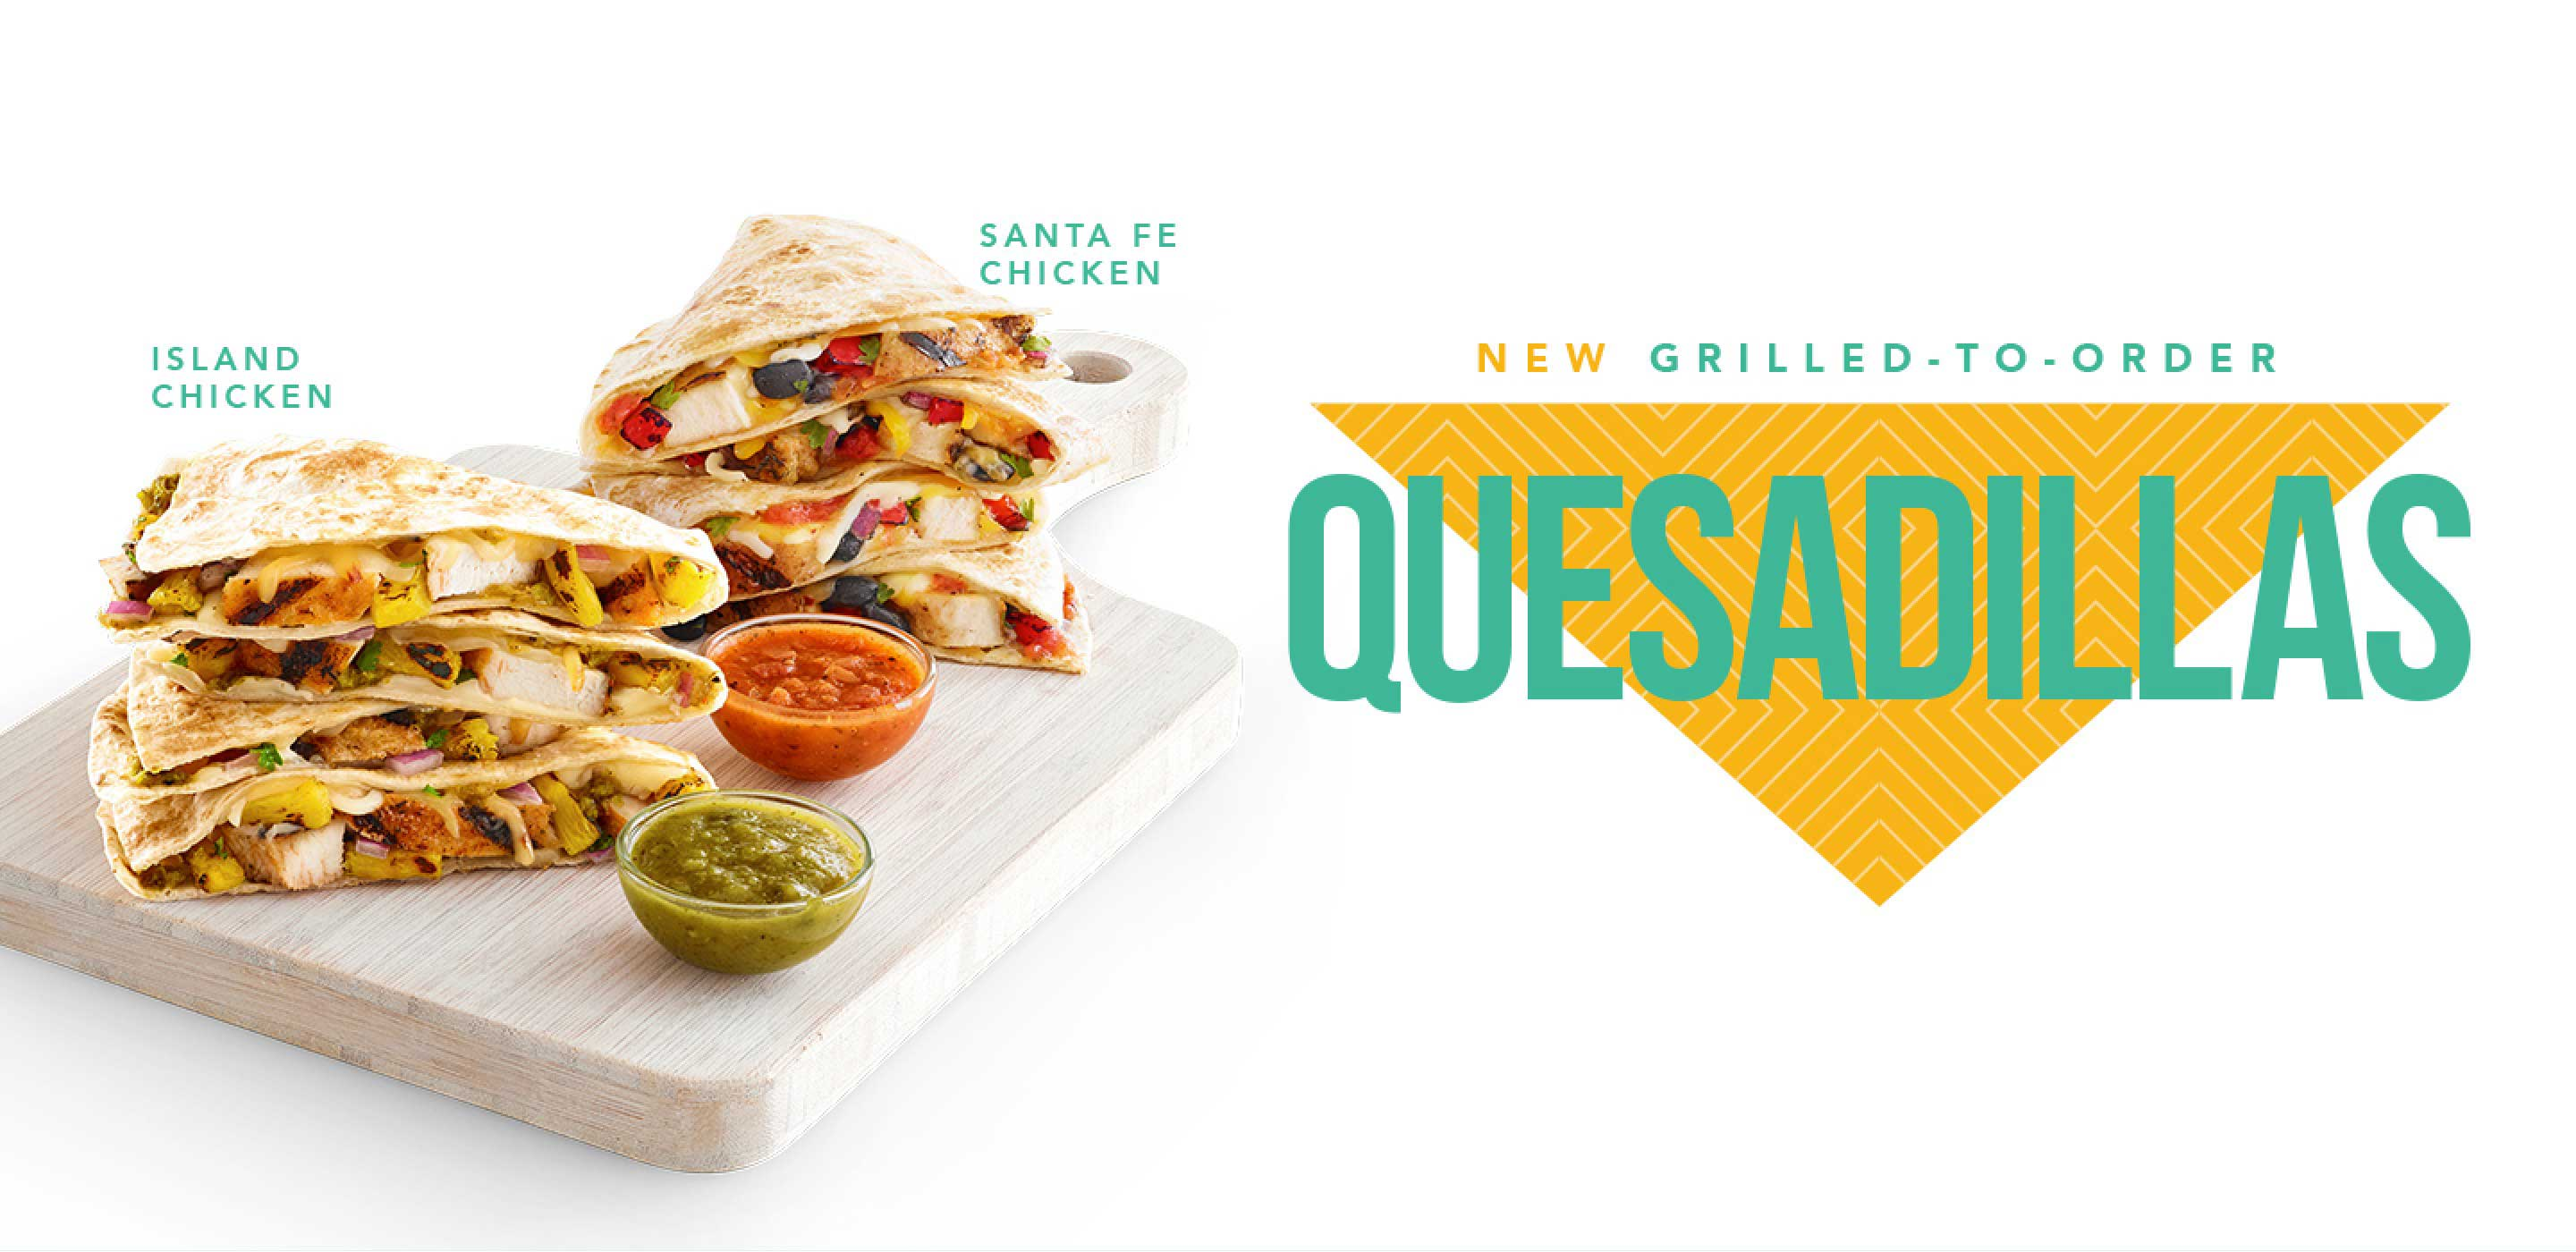 New Grilled-To-Order Quesadillas